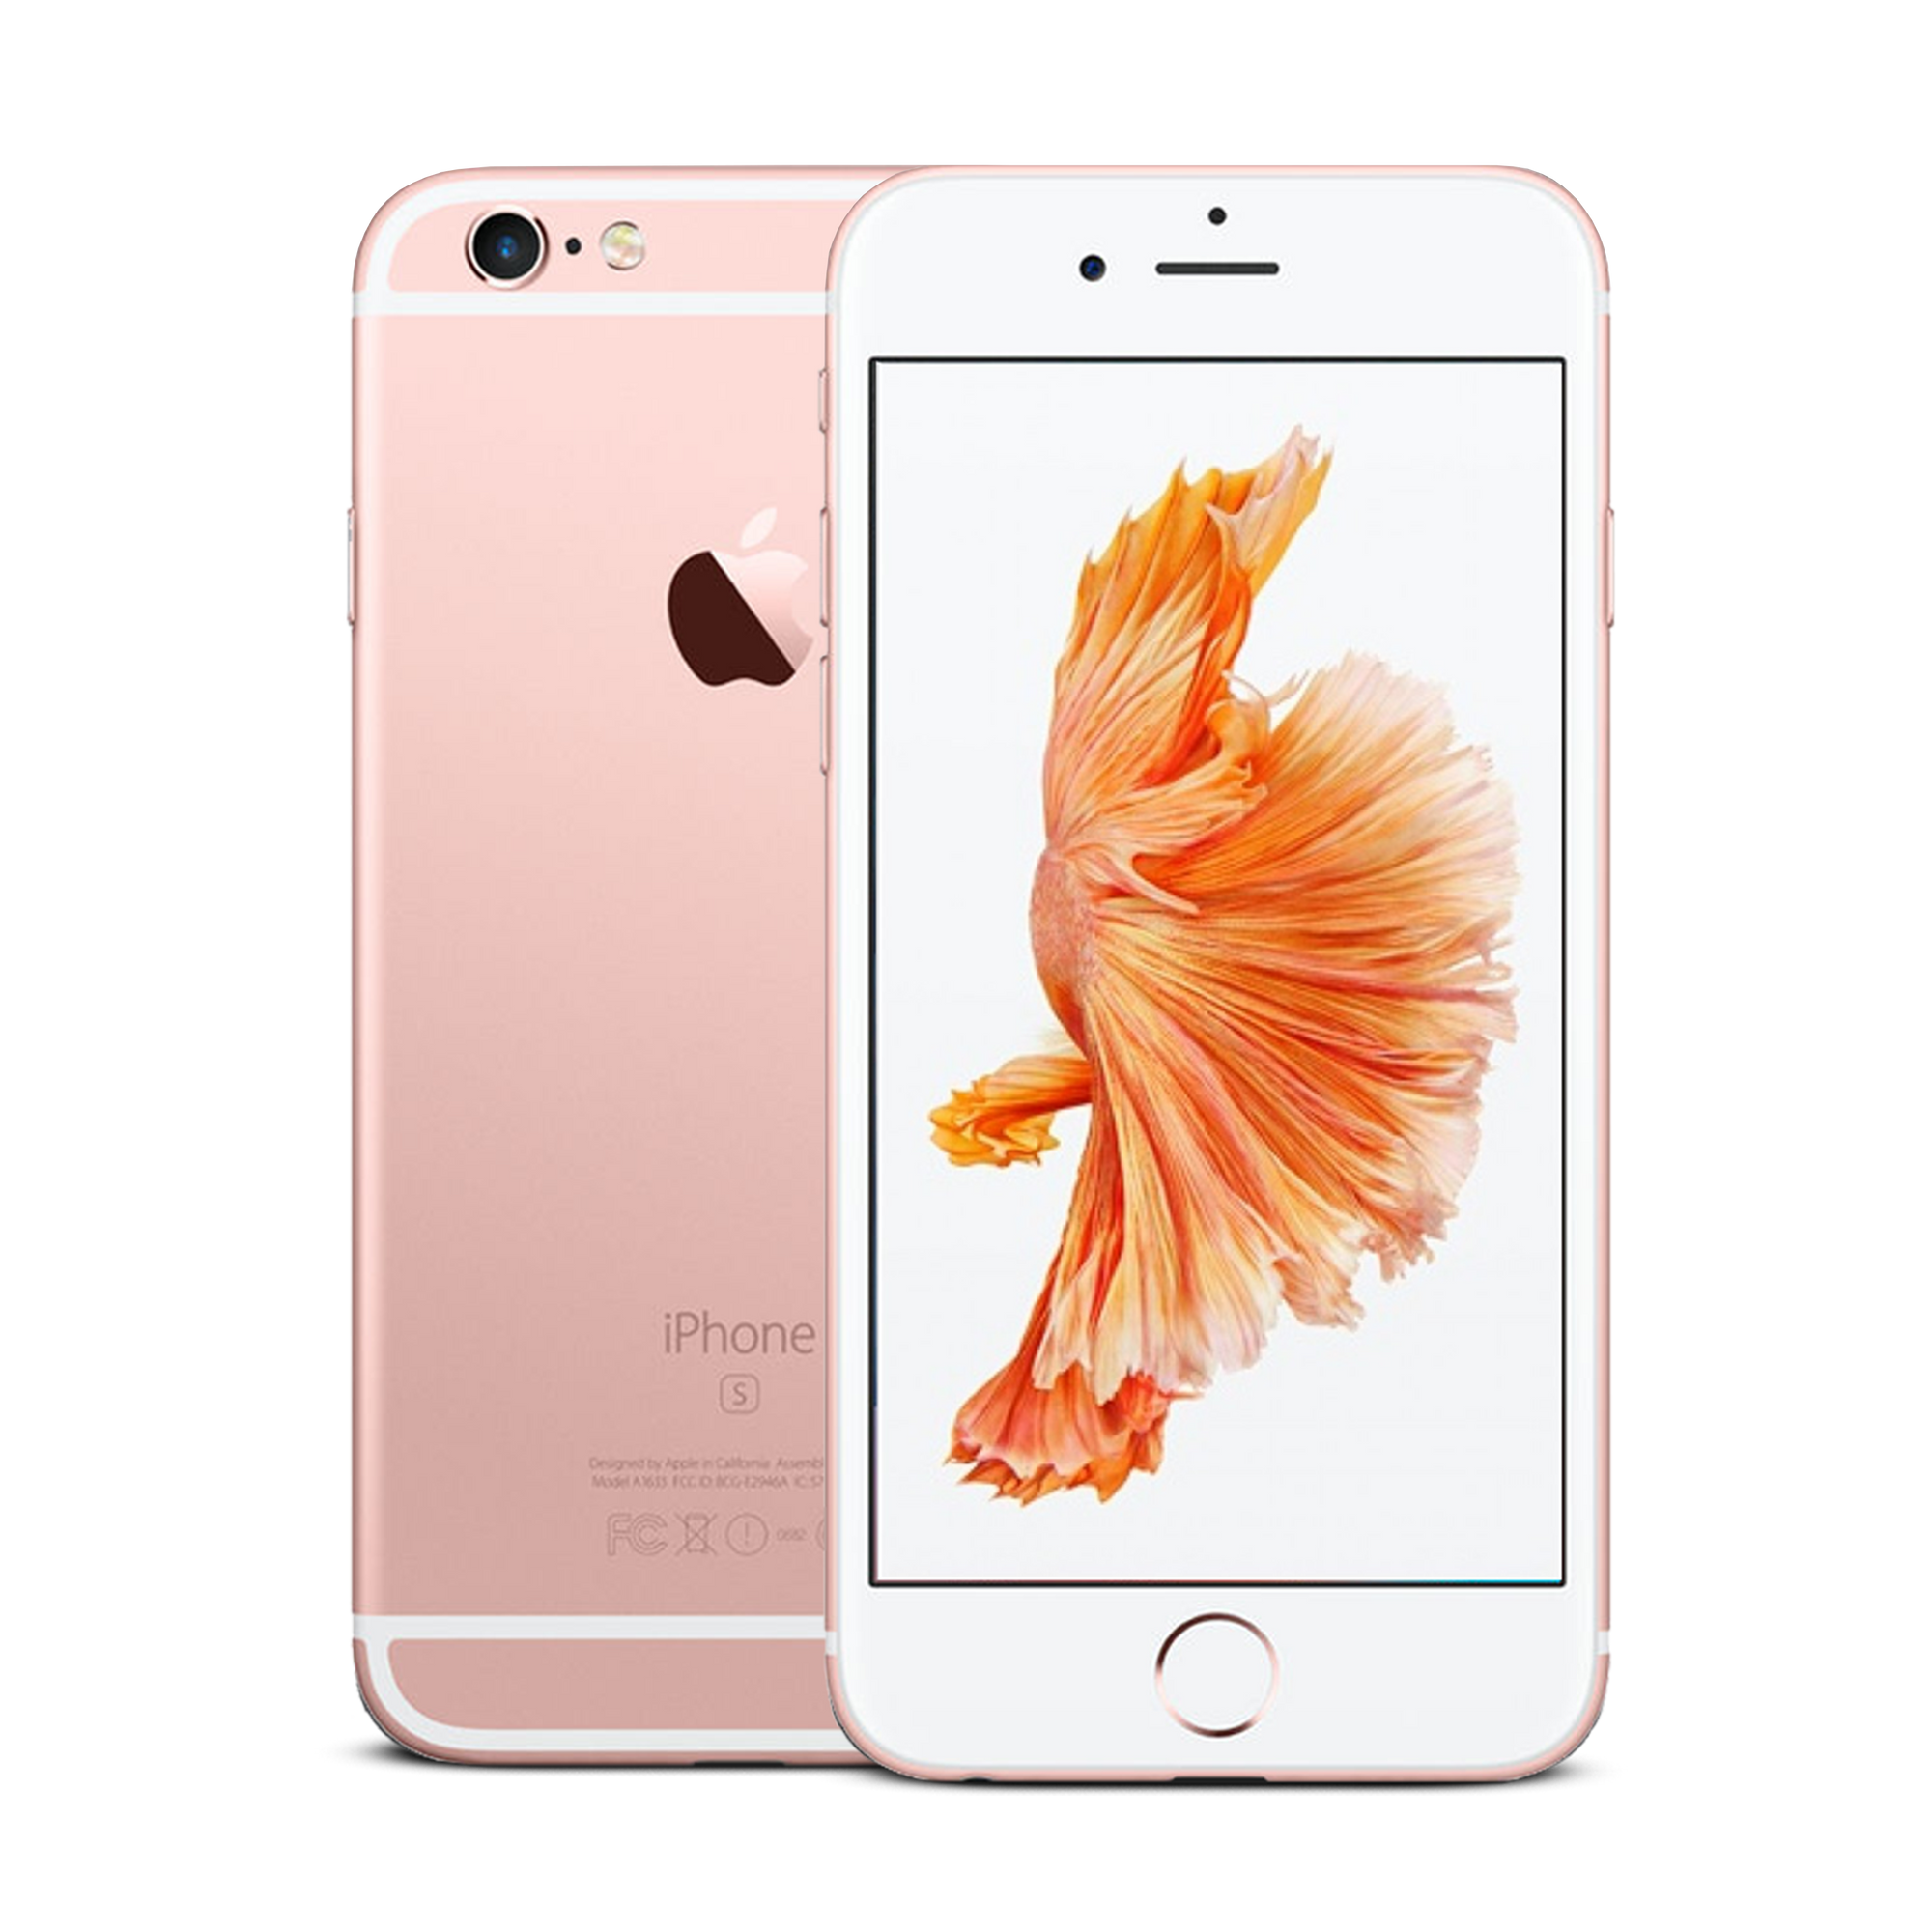 iPhone 6S 32GB Rose Gold | Very Good